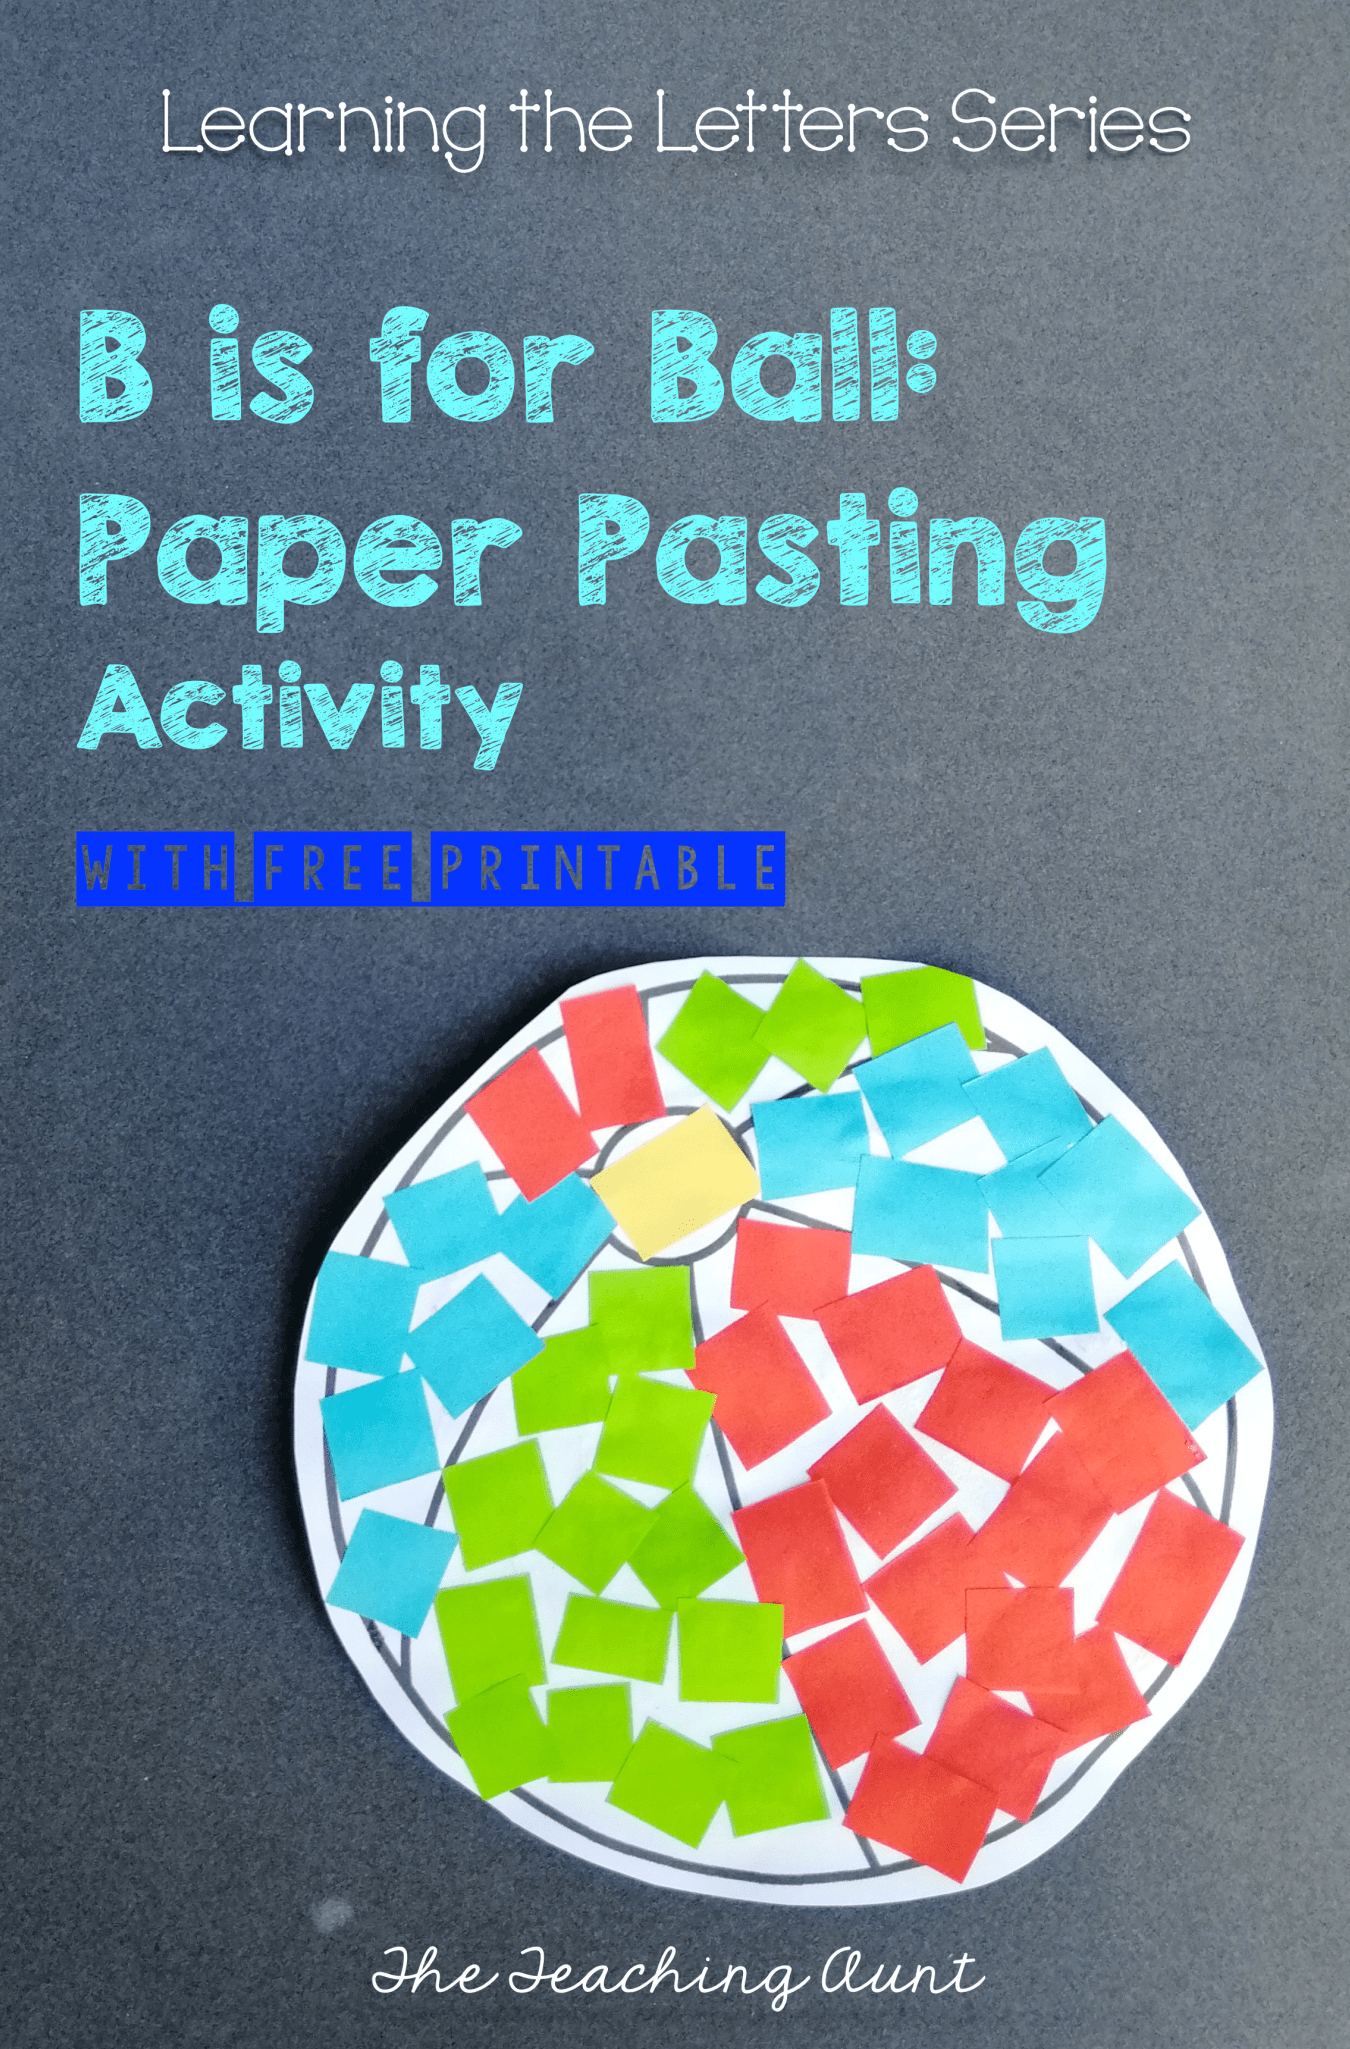 B Is For Ball Paper Pasting Activity